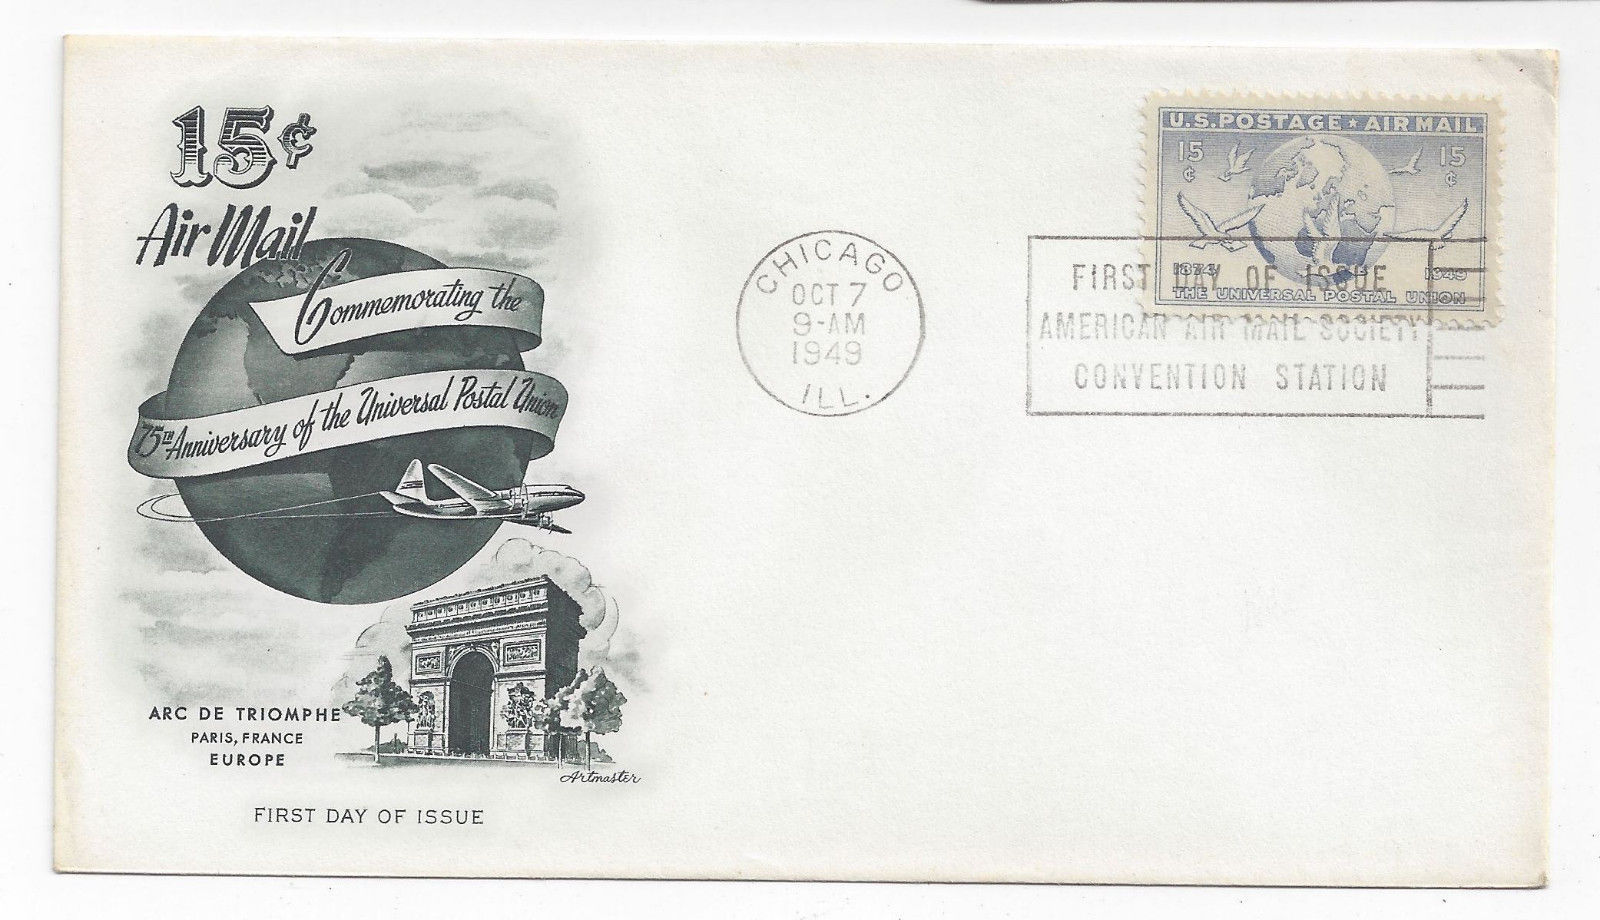 C38 C41 C43 C44 Air mail FDC s 4 Different First Day Cachet Covers